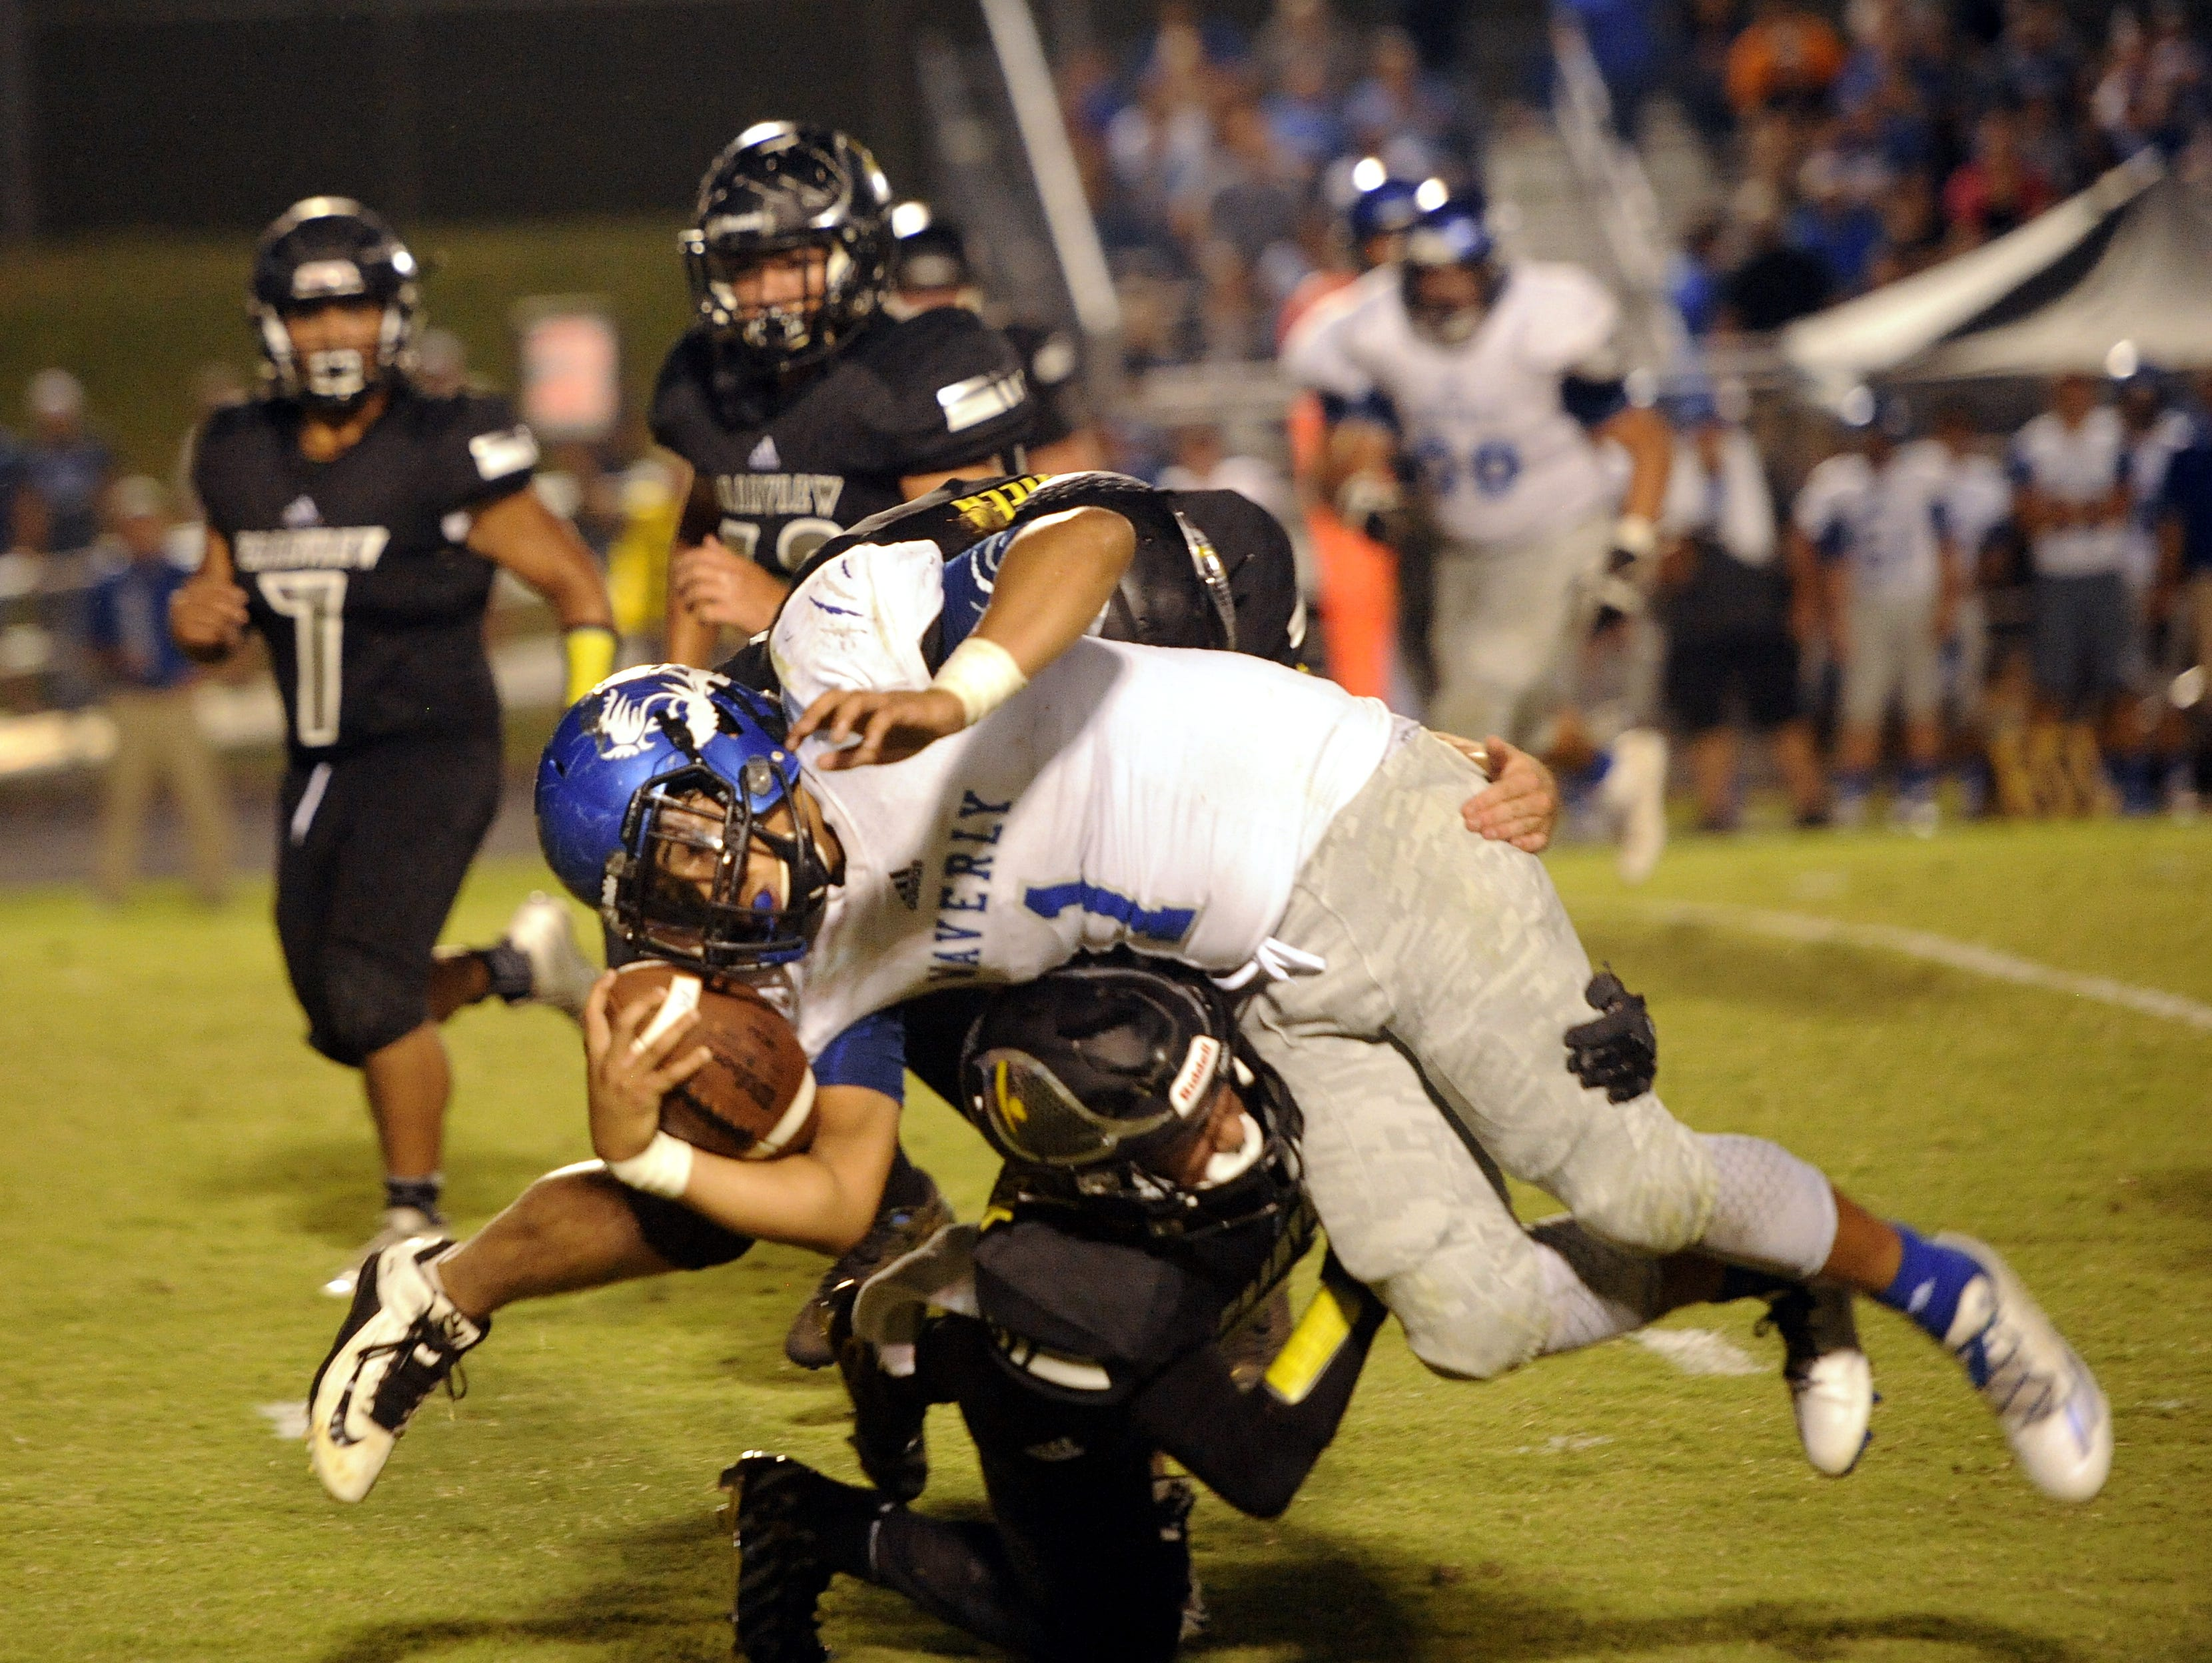 Waverly junior running back Michael Jackson is upended by Fairview junior Khristain Harris-Lusk.